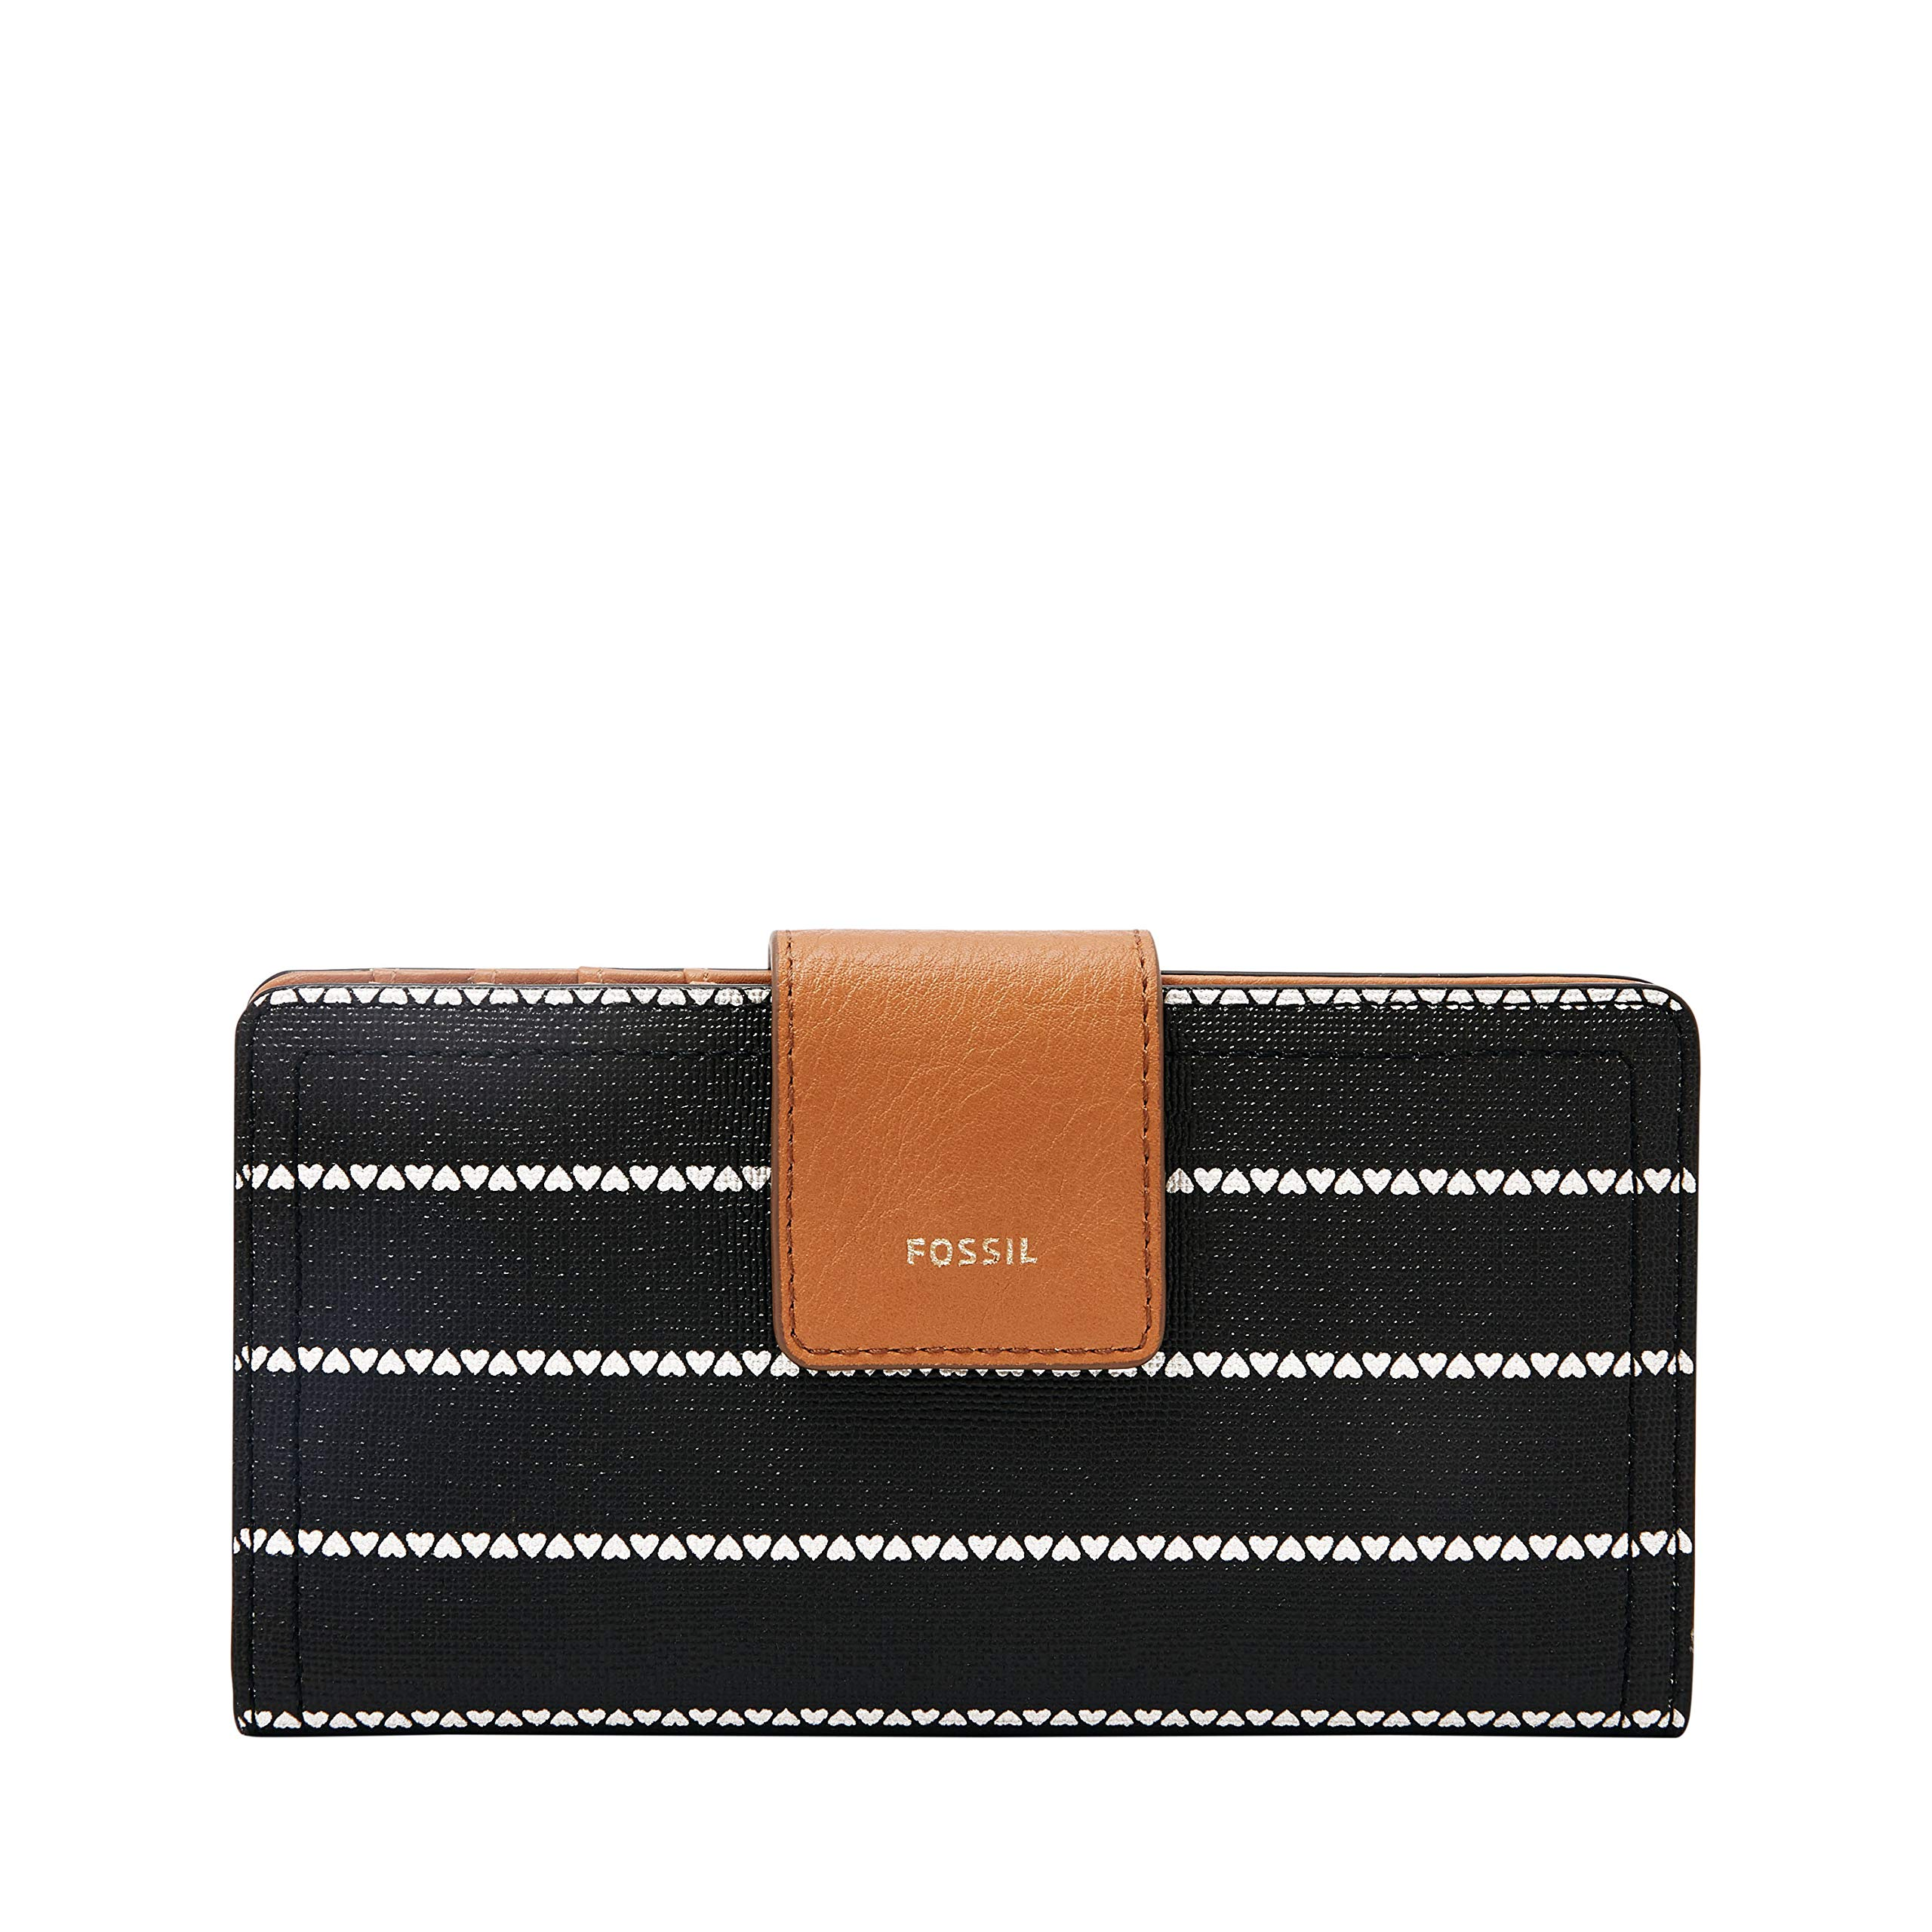 Fossil Logan RFID Tab Wallet, Black/White by Fossil